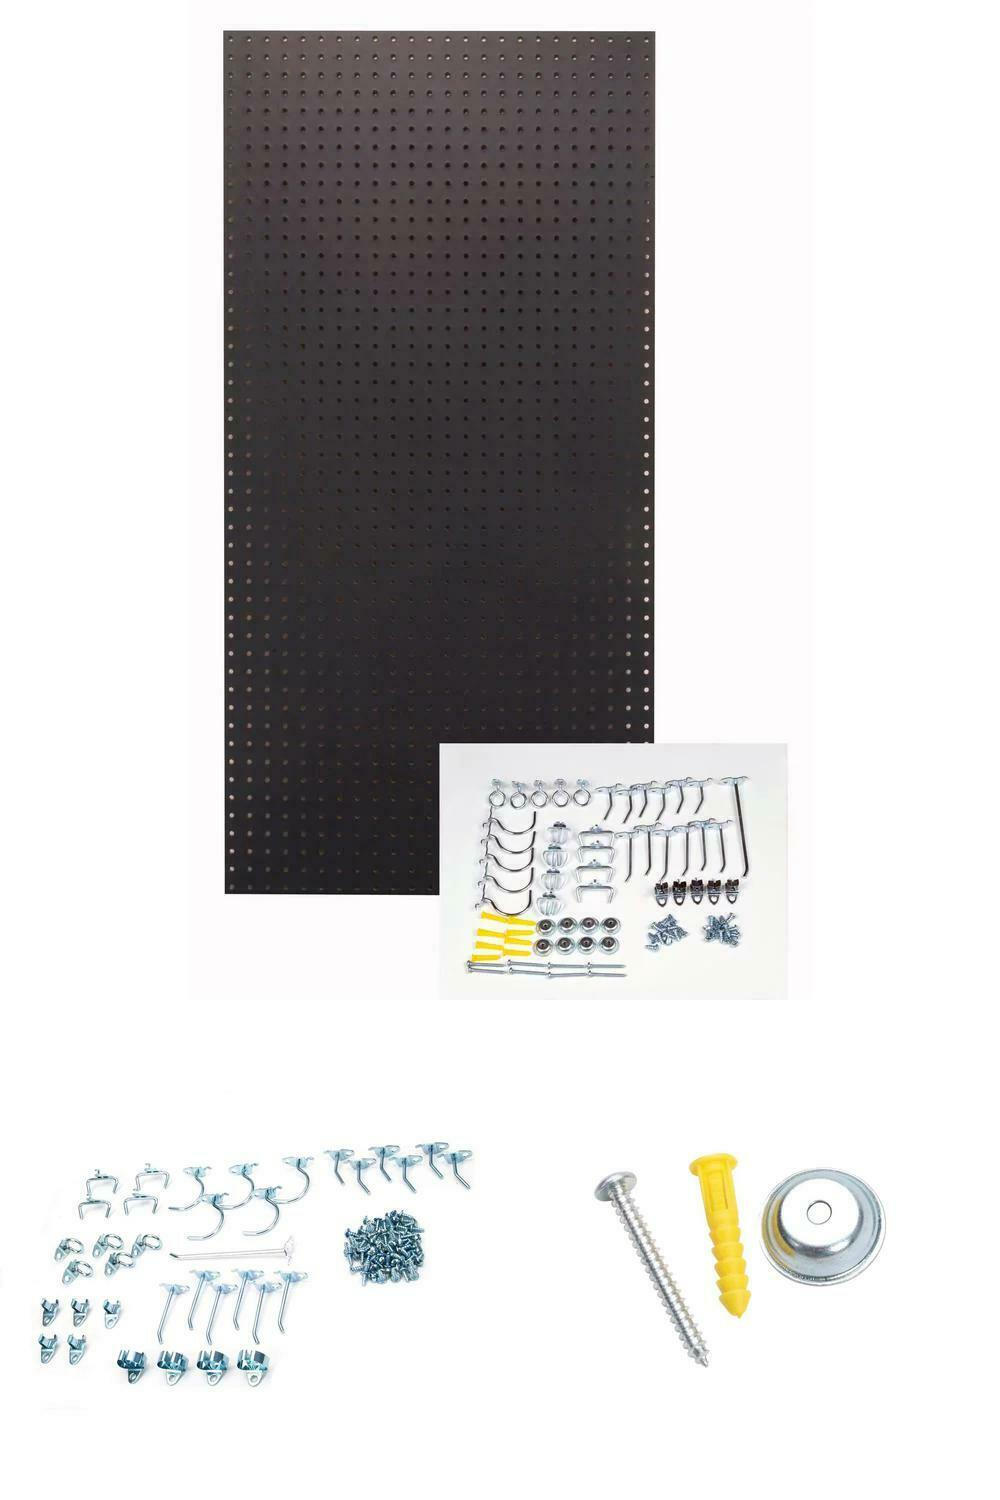 1/4 In. Custom Painted Jet Black Pegboard Wall Organizer With 36-Piece Locking H